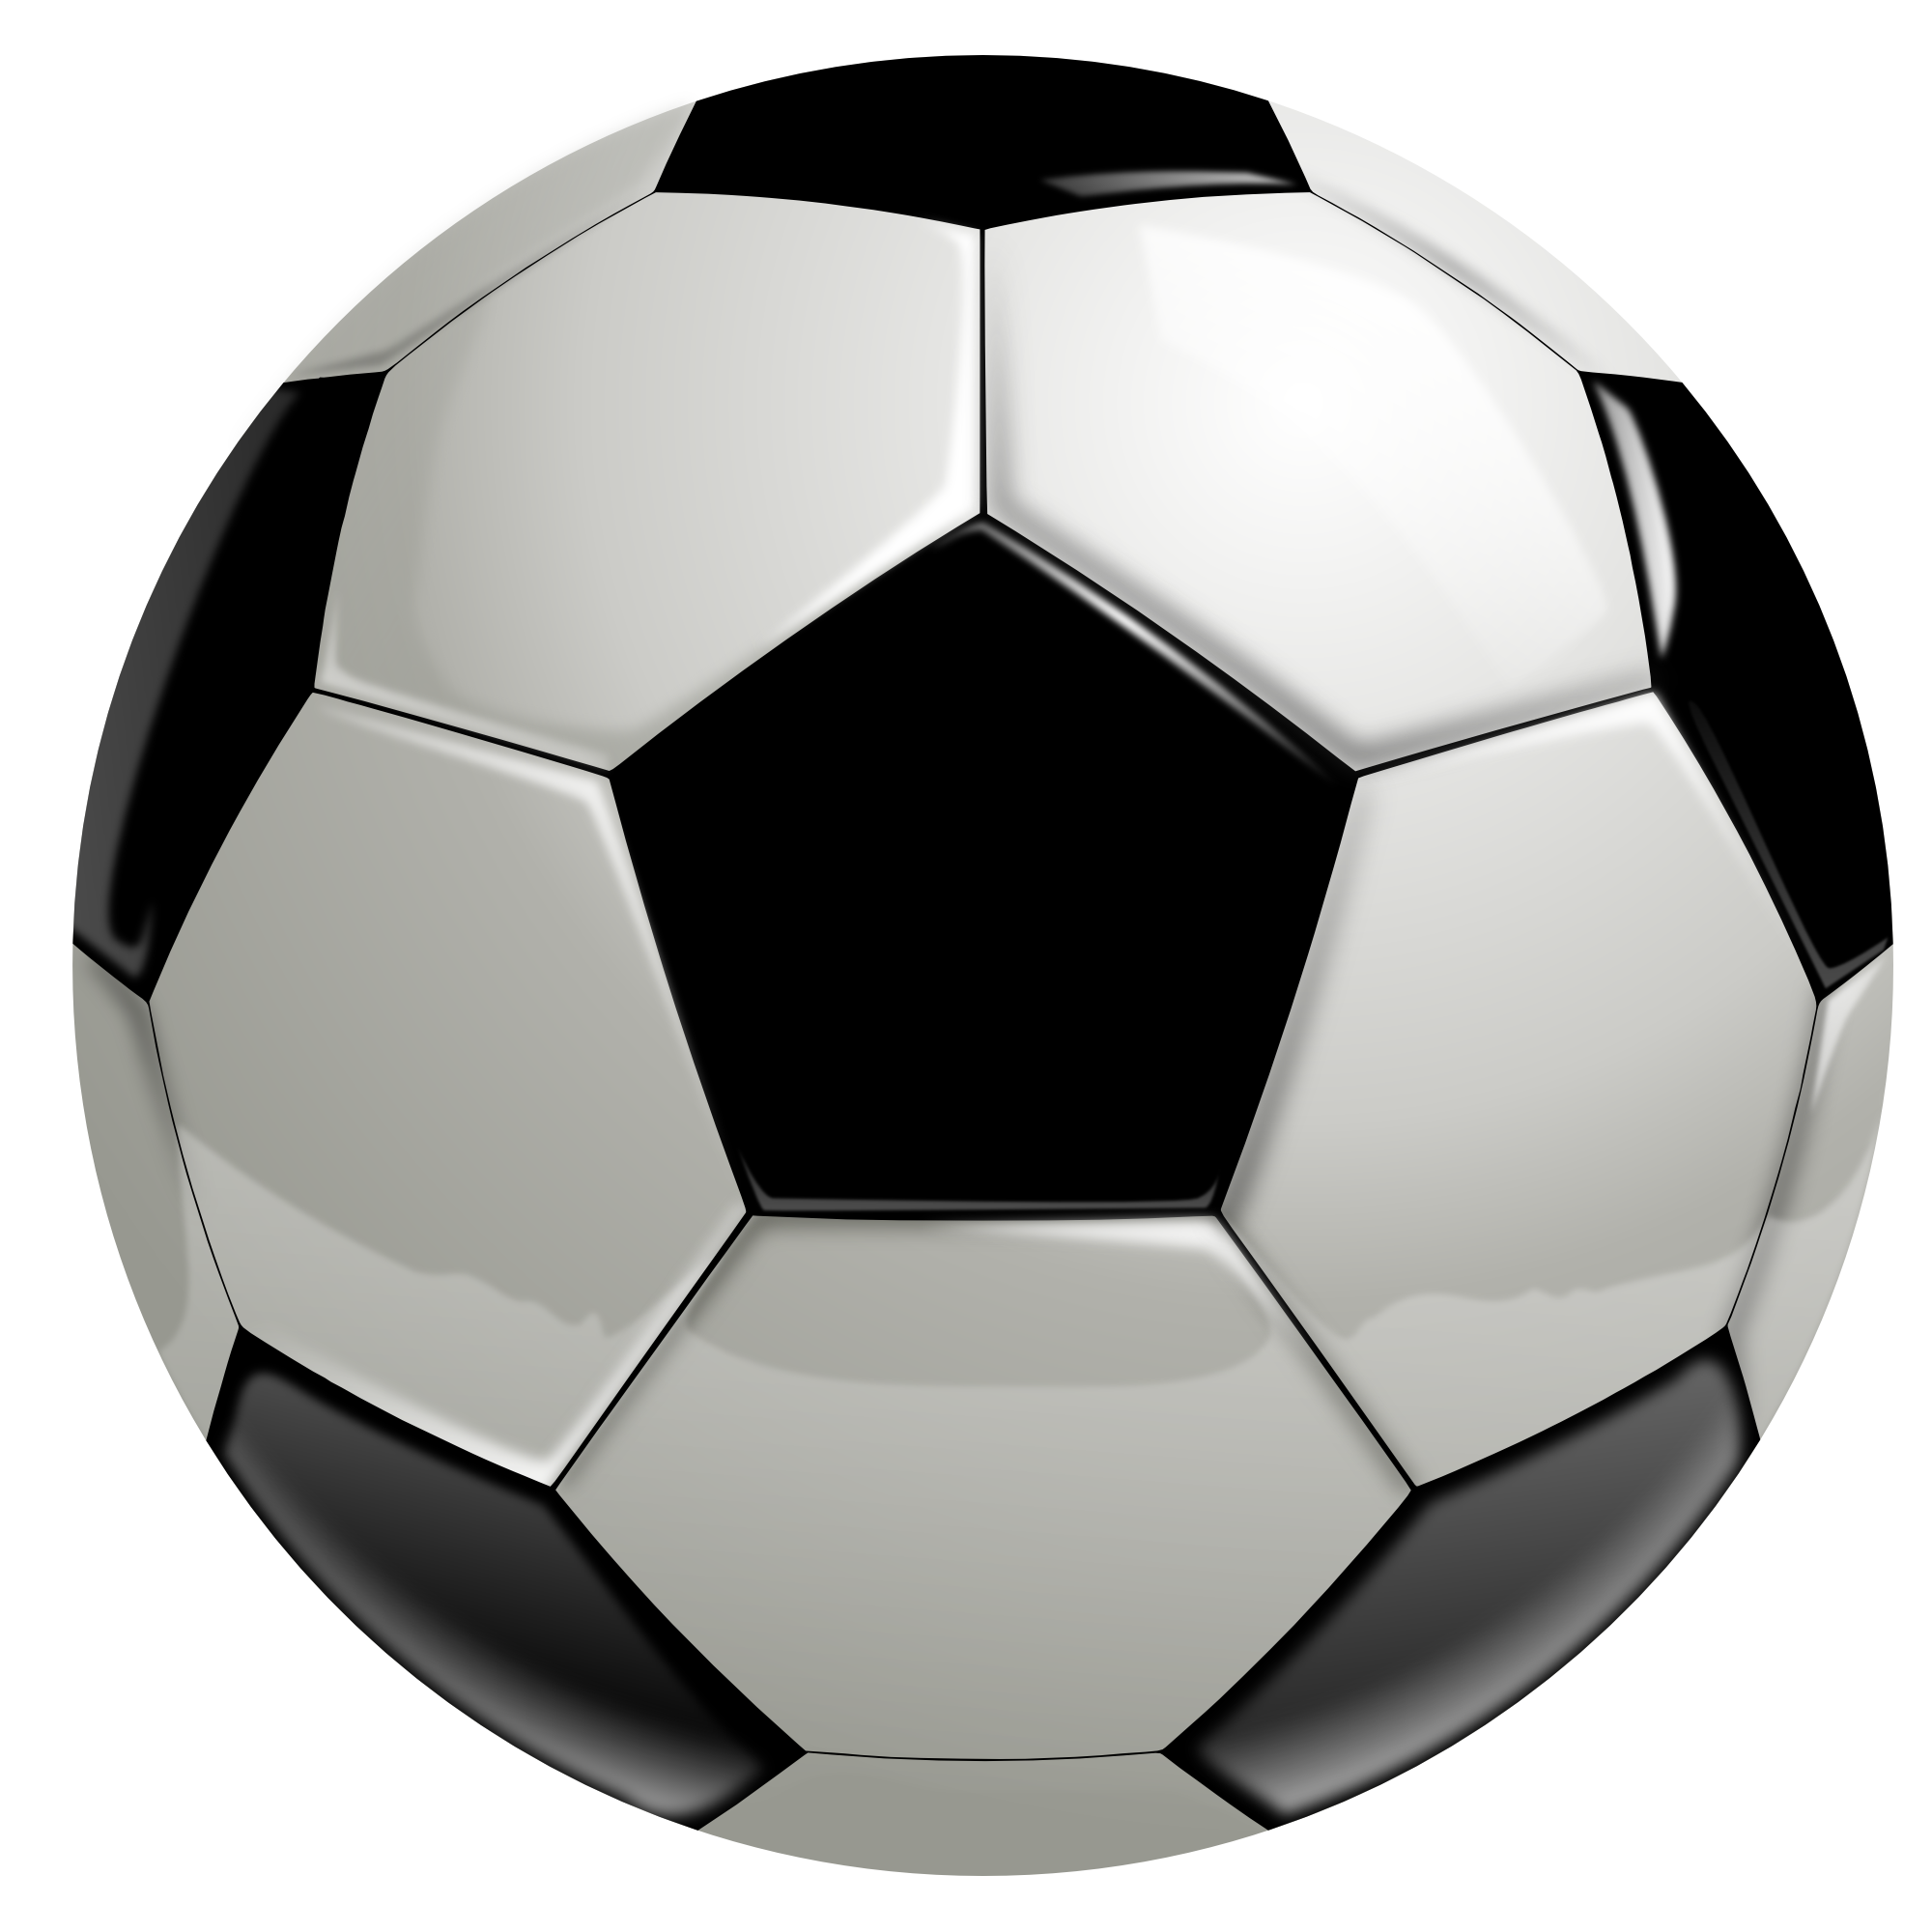 Png Of Football & Free Of Football.png Transparent Images.